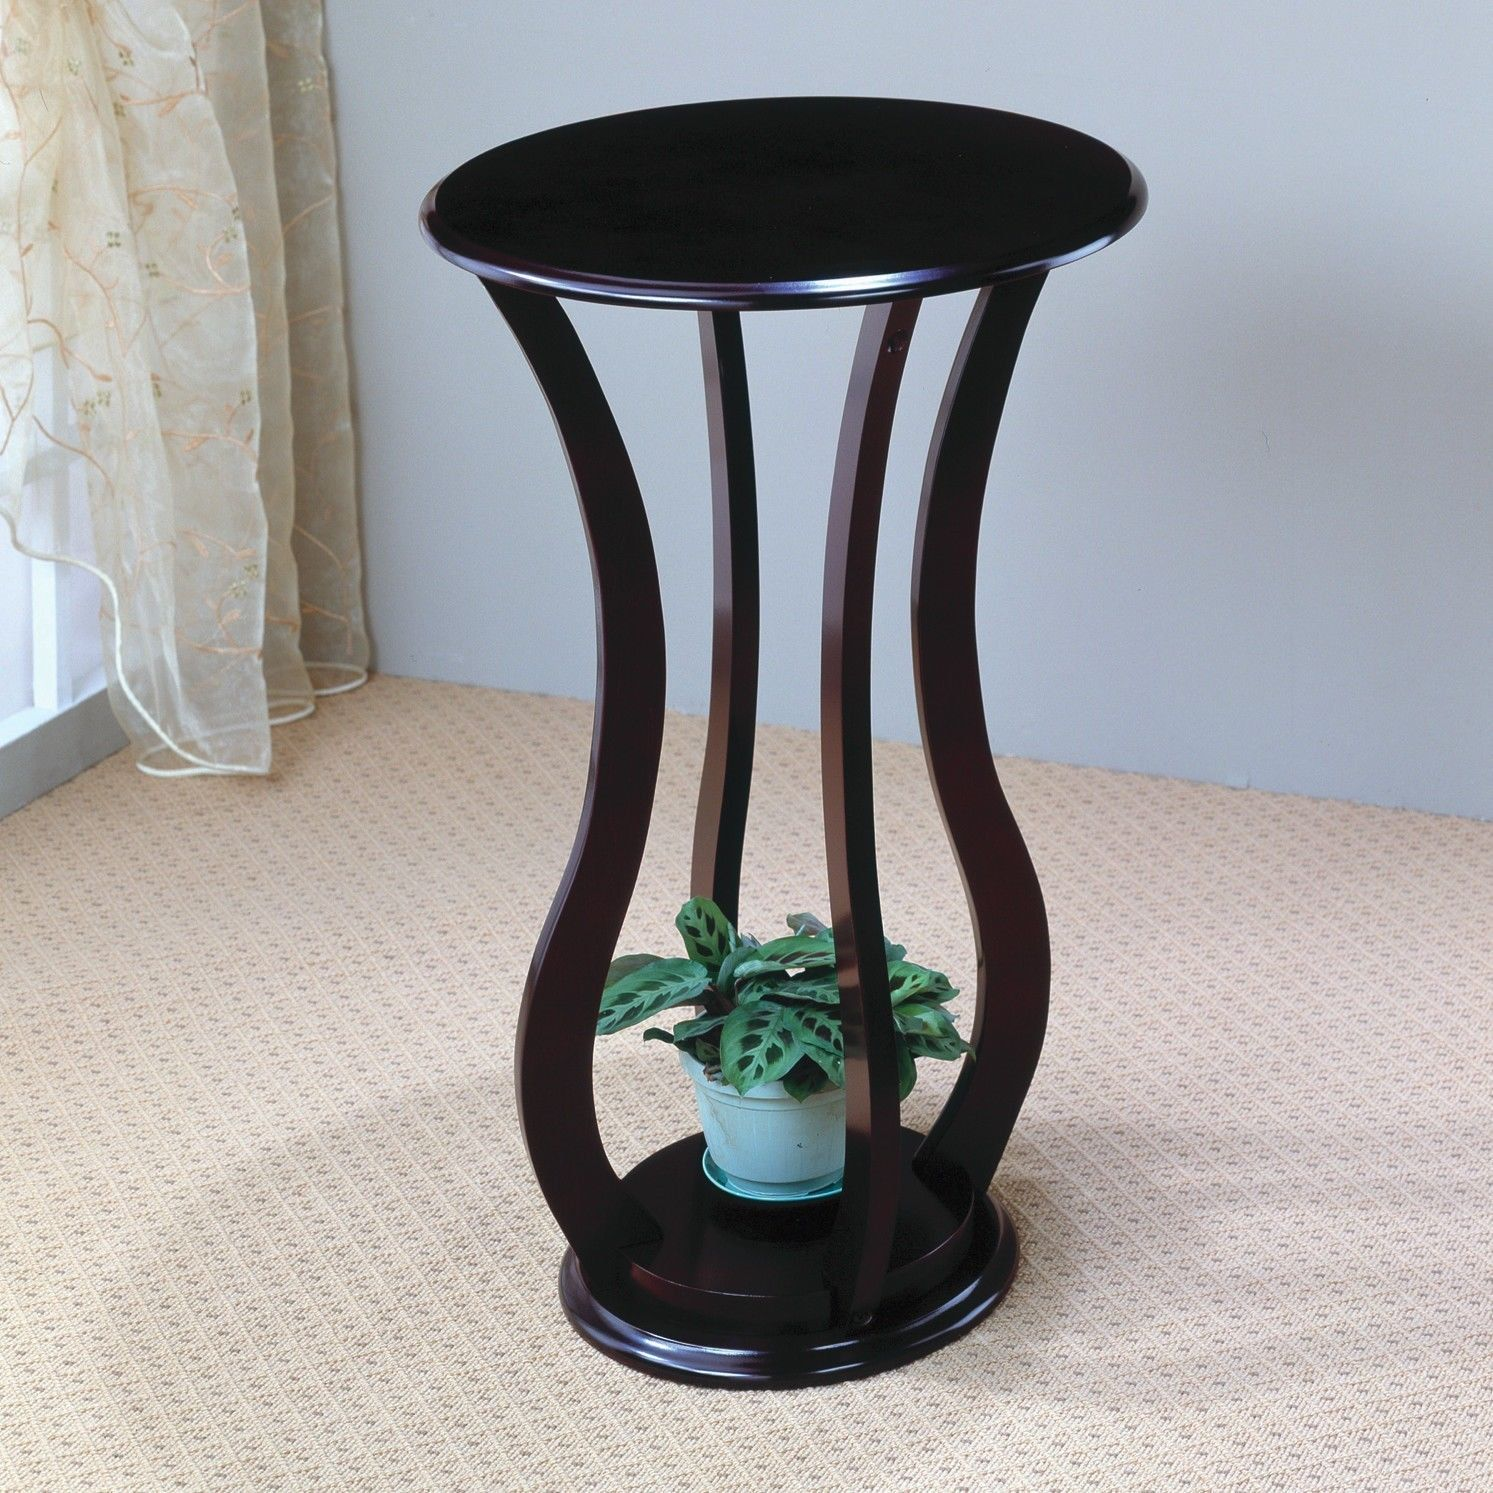 indoor plant stand wood round pedestal accent table modern display furniture new bronze bedside nautical decor brown entryway glass coffee and end sets retro wooden chairs side